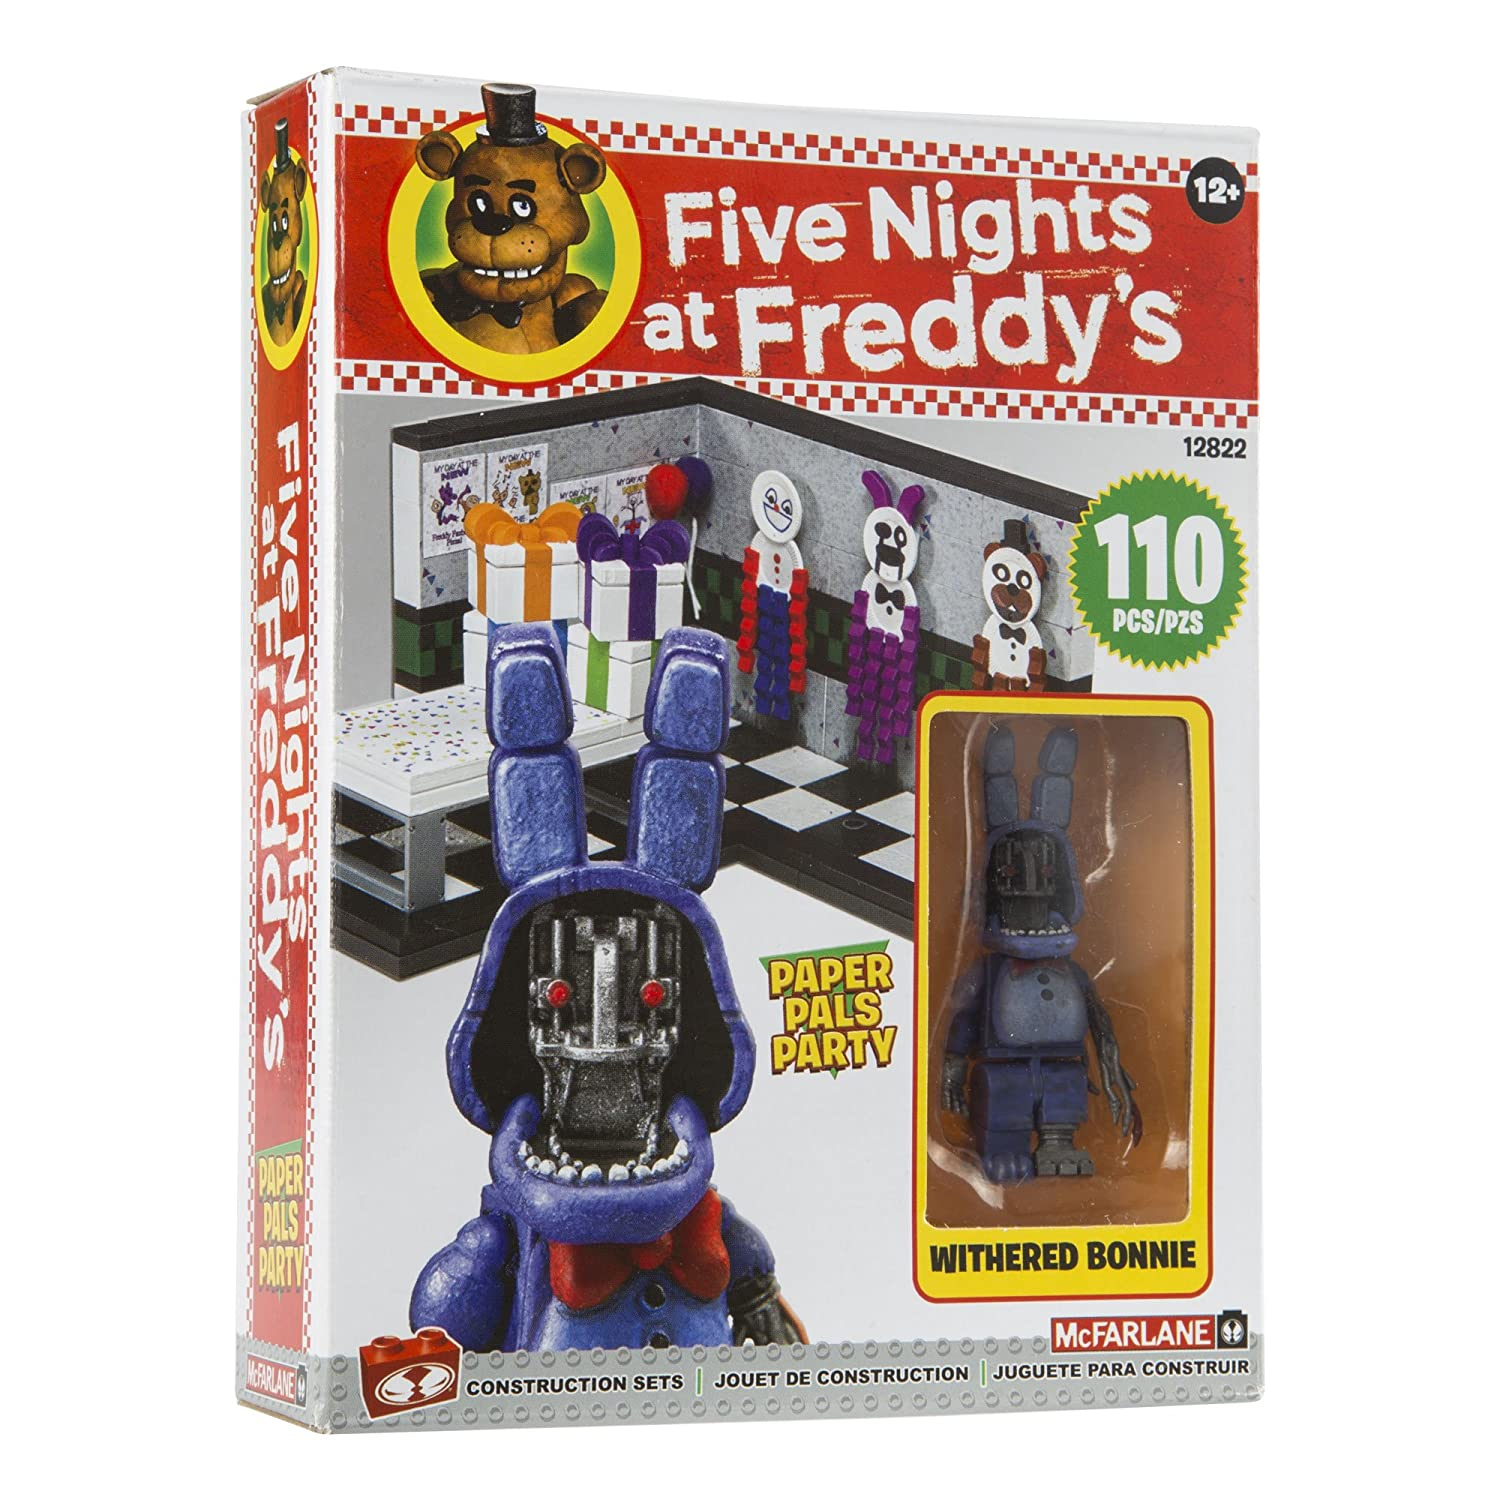 Freddys Mcfarlane Nights At De Juguetes Five 0wOkn8PX